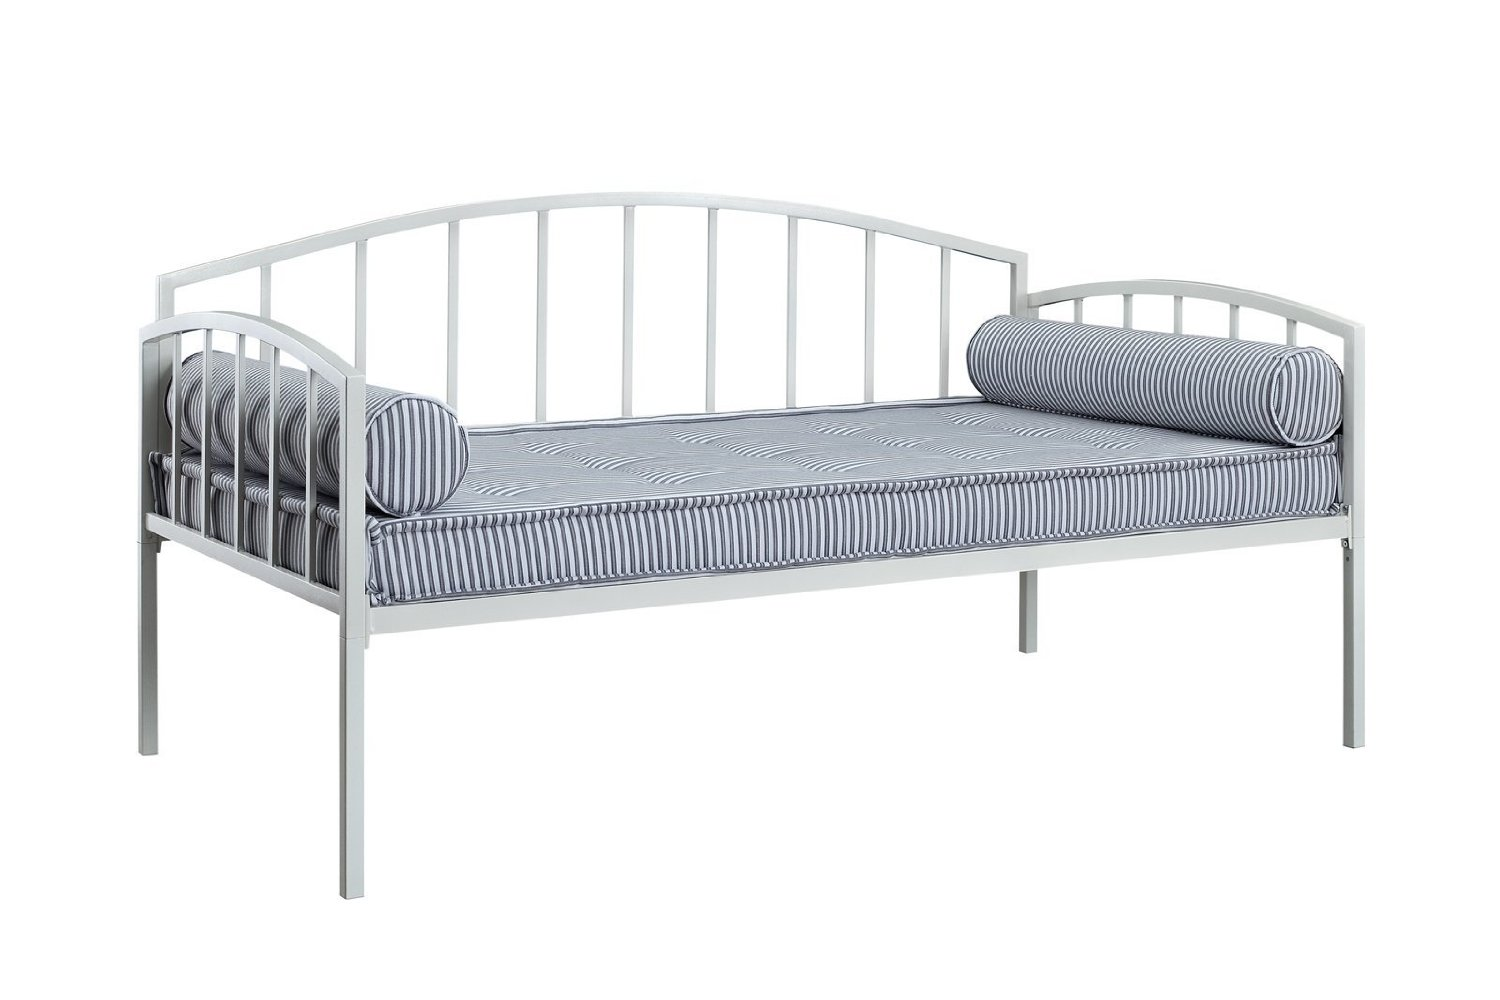 DHP Ava Metal Daybed Frame with Round Arm Design, Twin Size, White